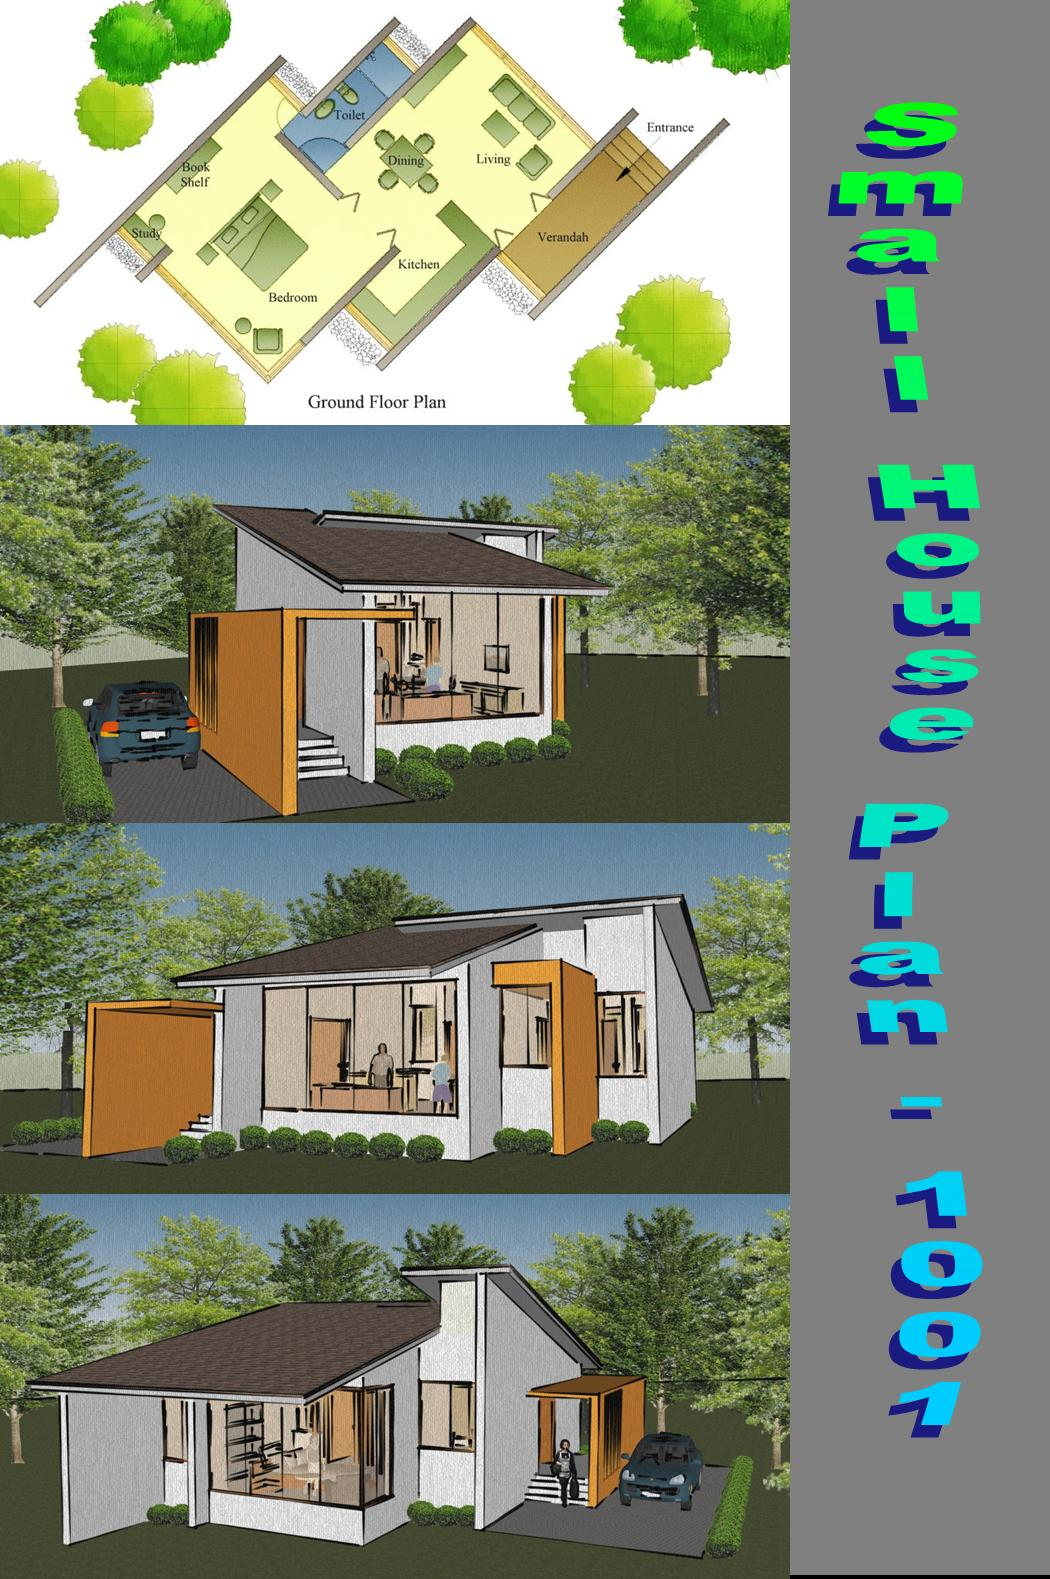 Home plans in india 5 best small home plans from for Small home house plans